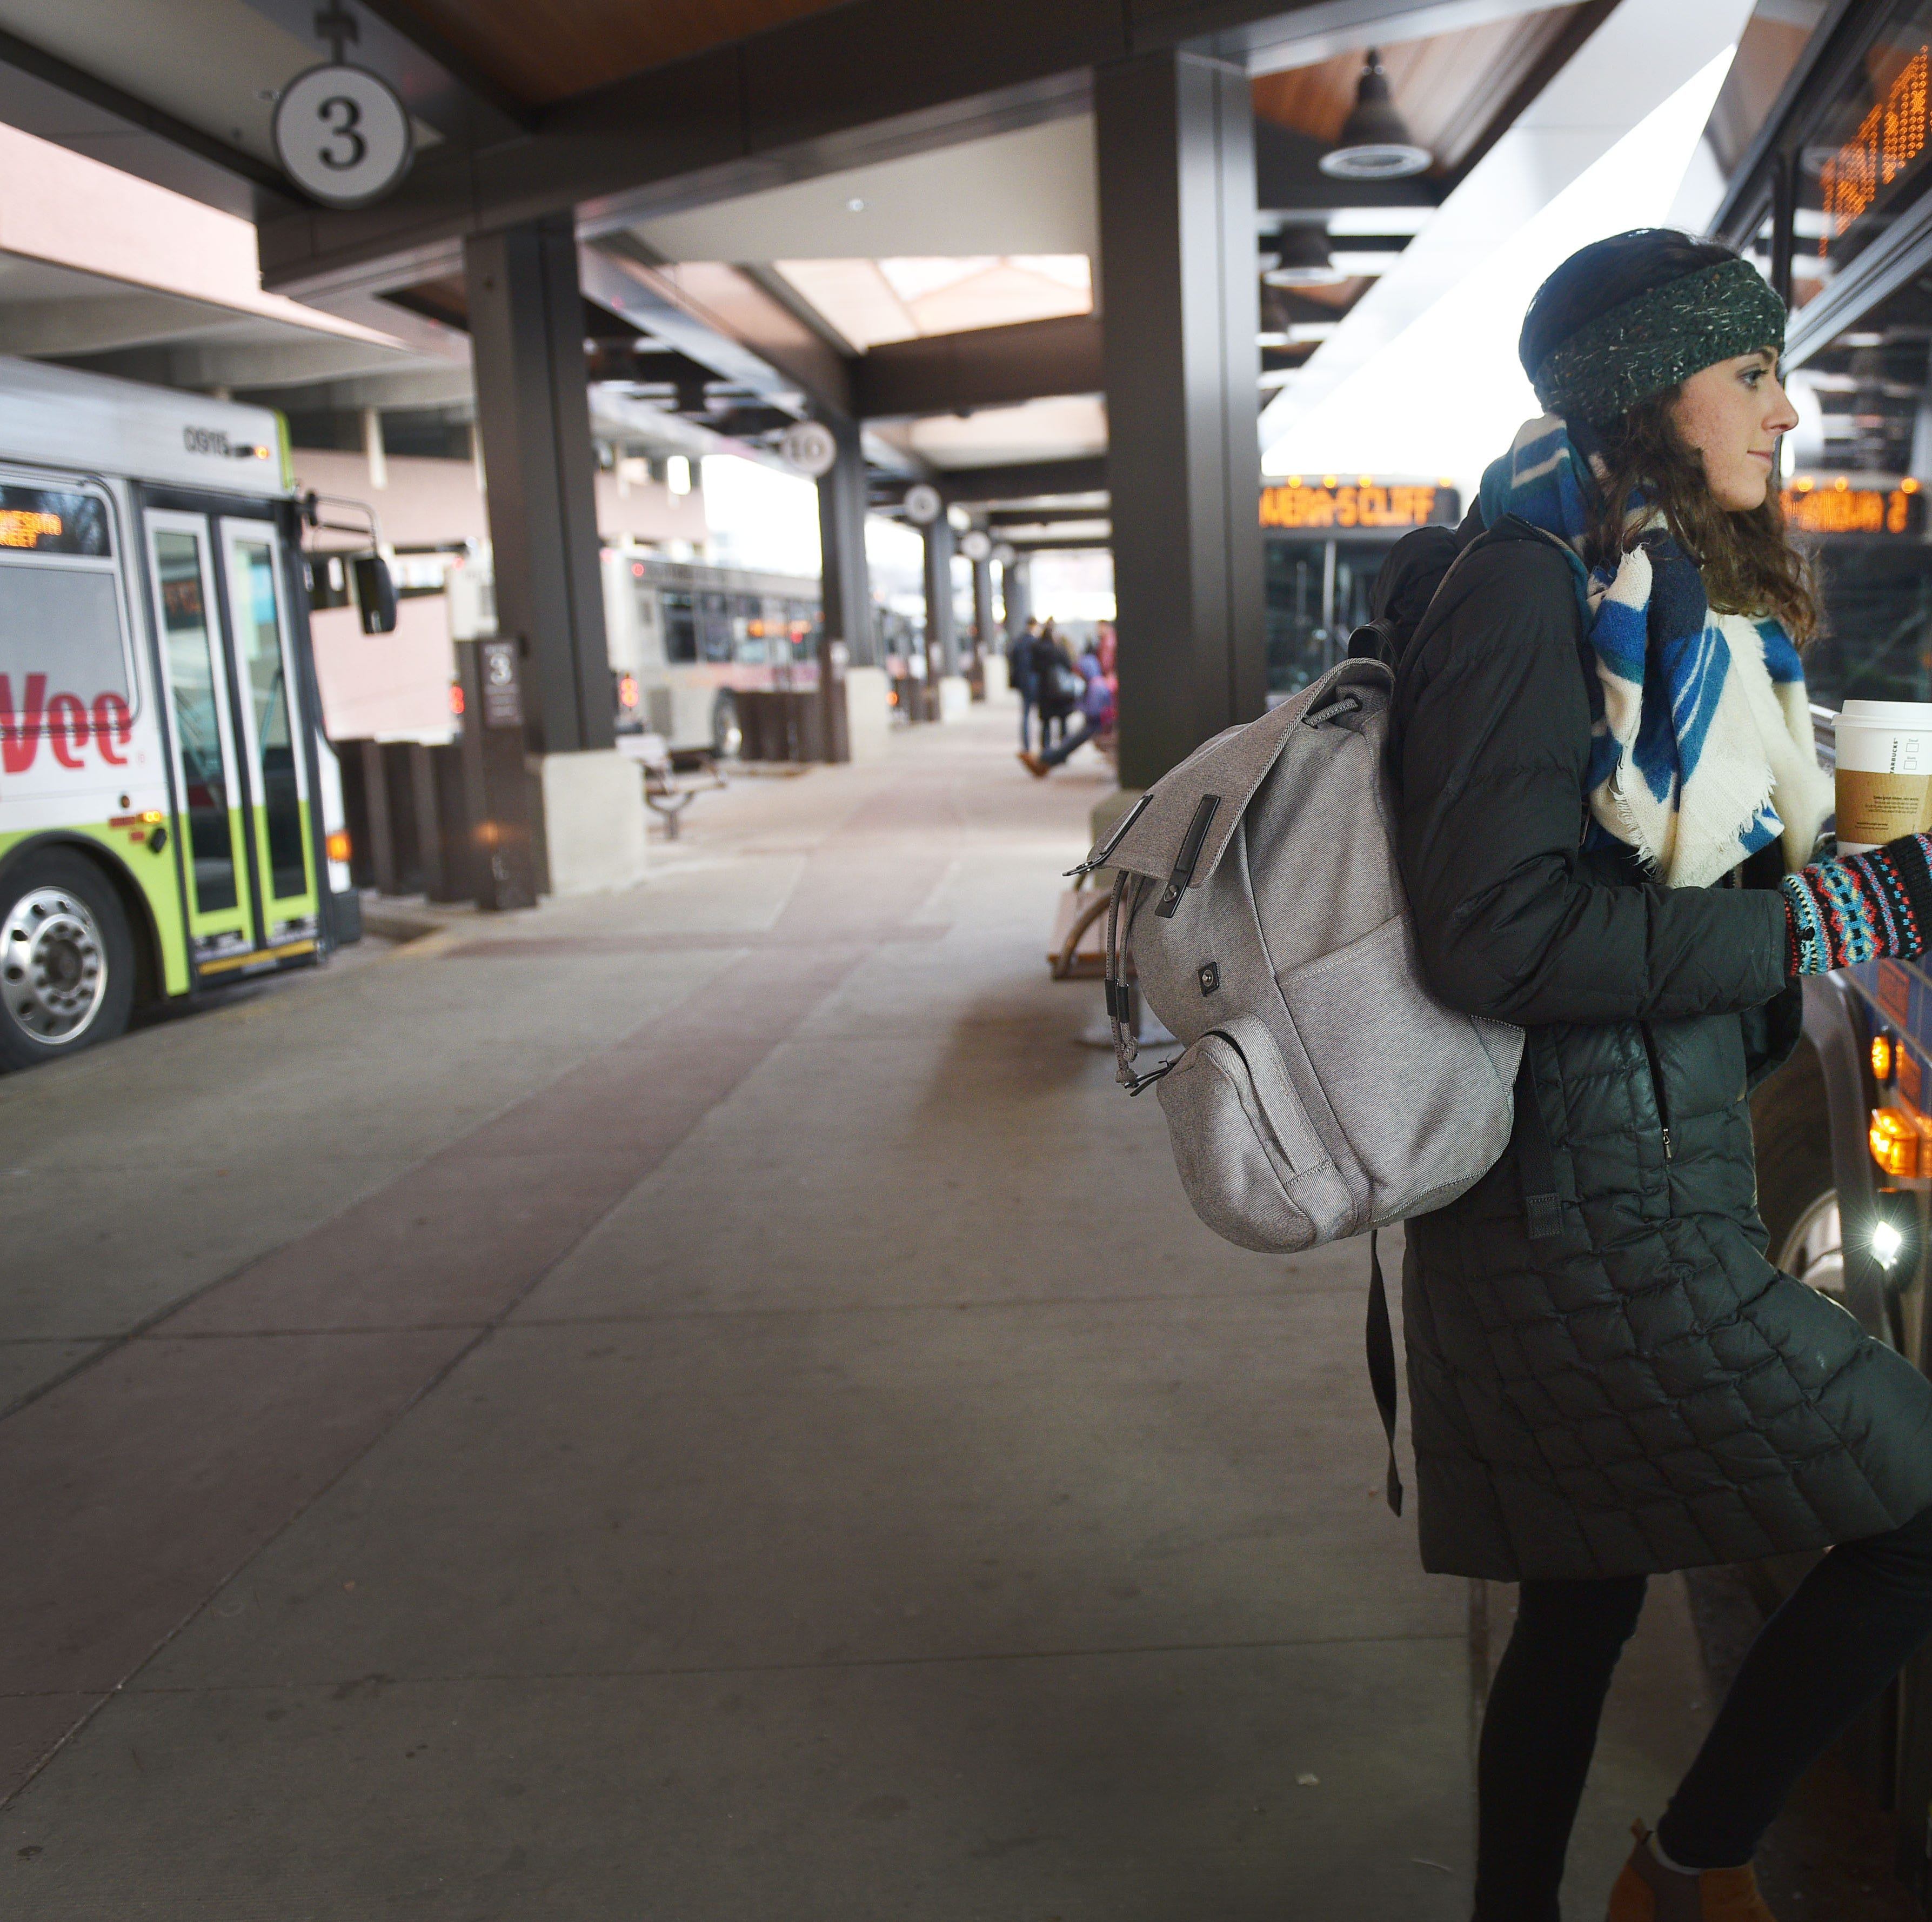 How do you make public transit better? City's 'best and brightest' trying to solve decades old problem